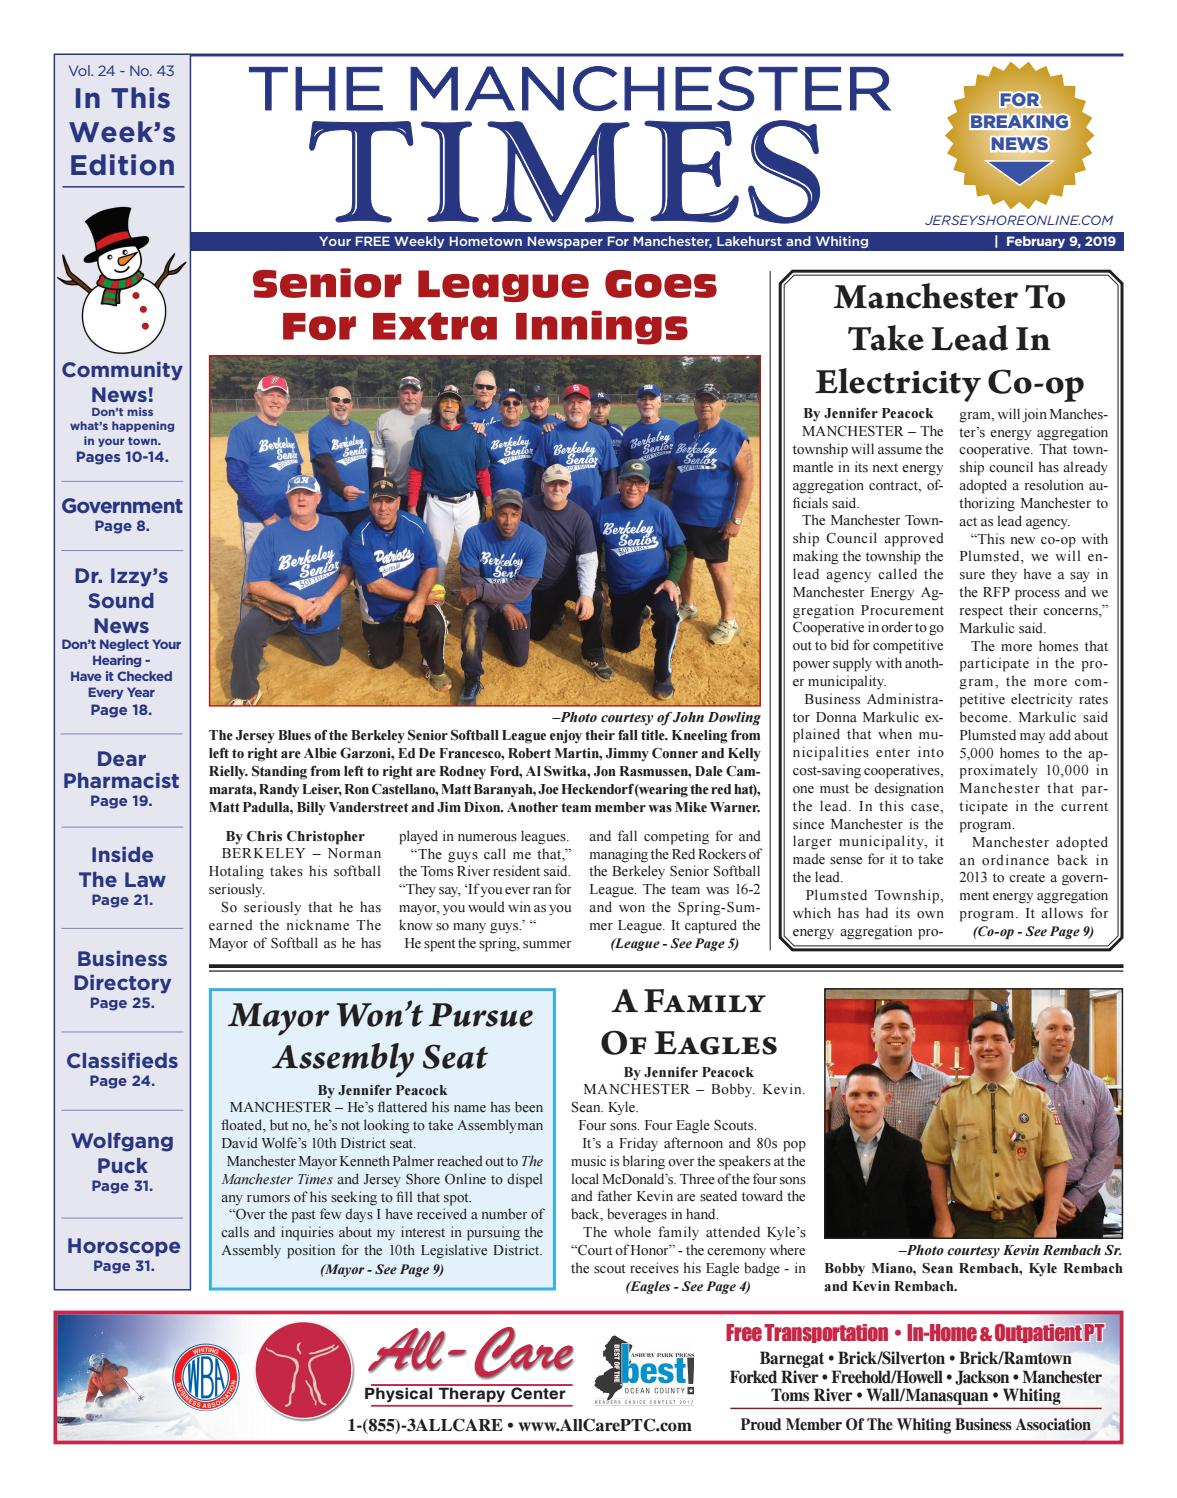 5a3de2ca58d2 2019-02-09 - The Manchester Times by Micromedia Publications Jersey Shore  Online - issuu